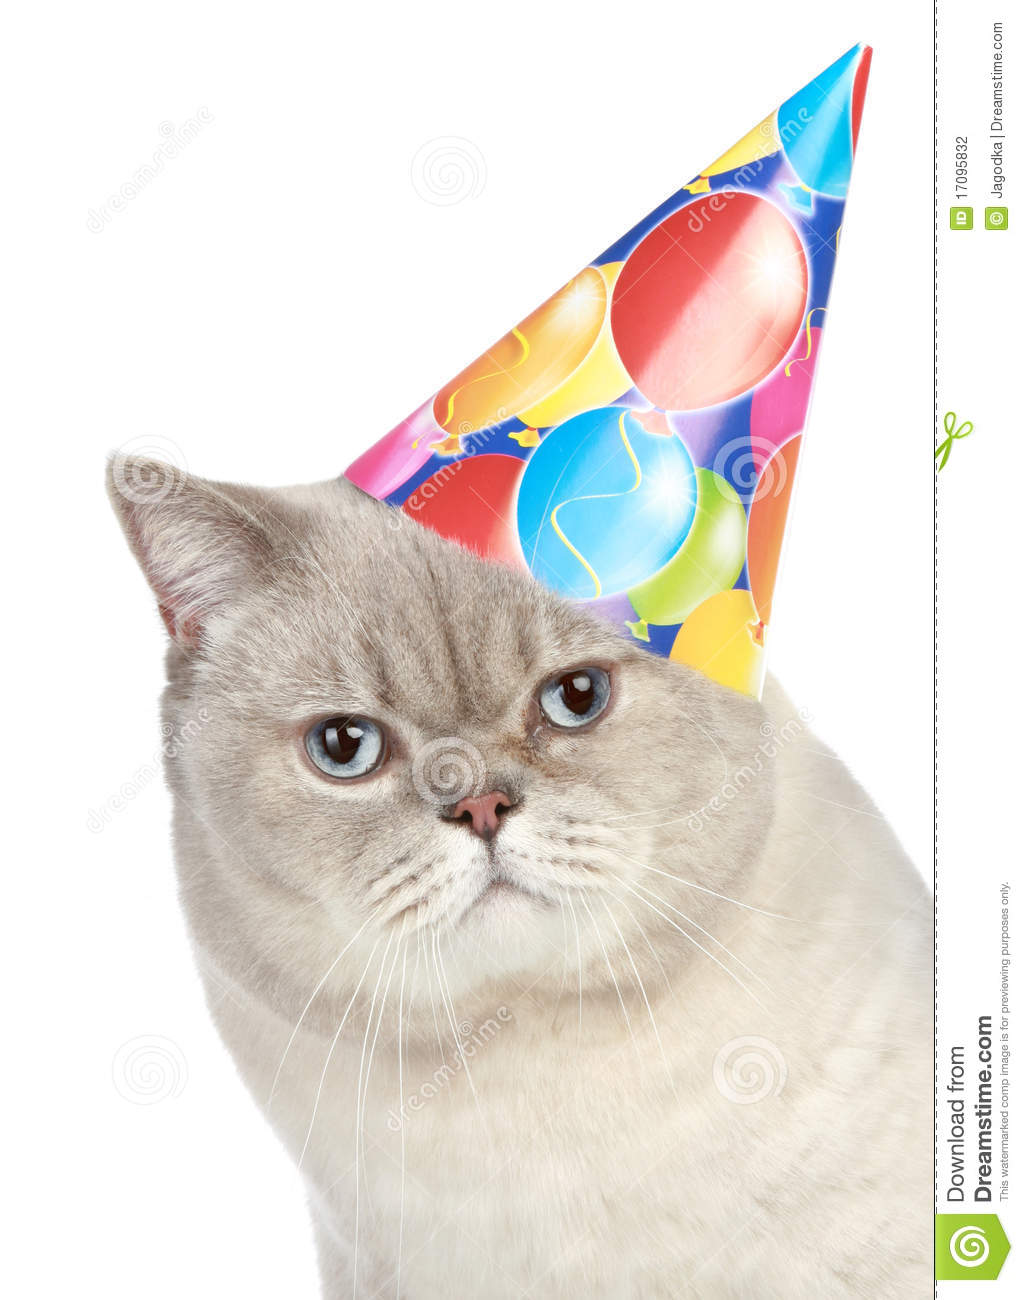 Pics Of Cats In Birthday Hats